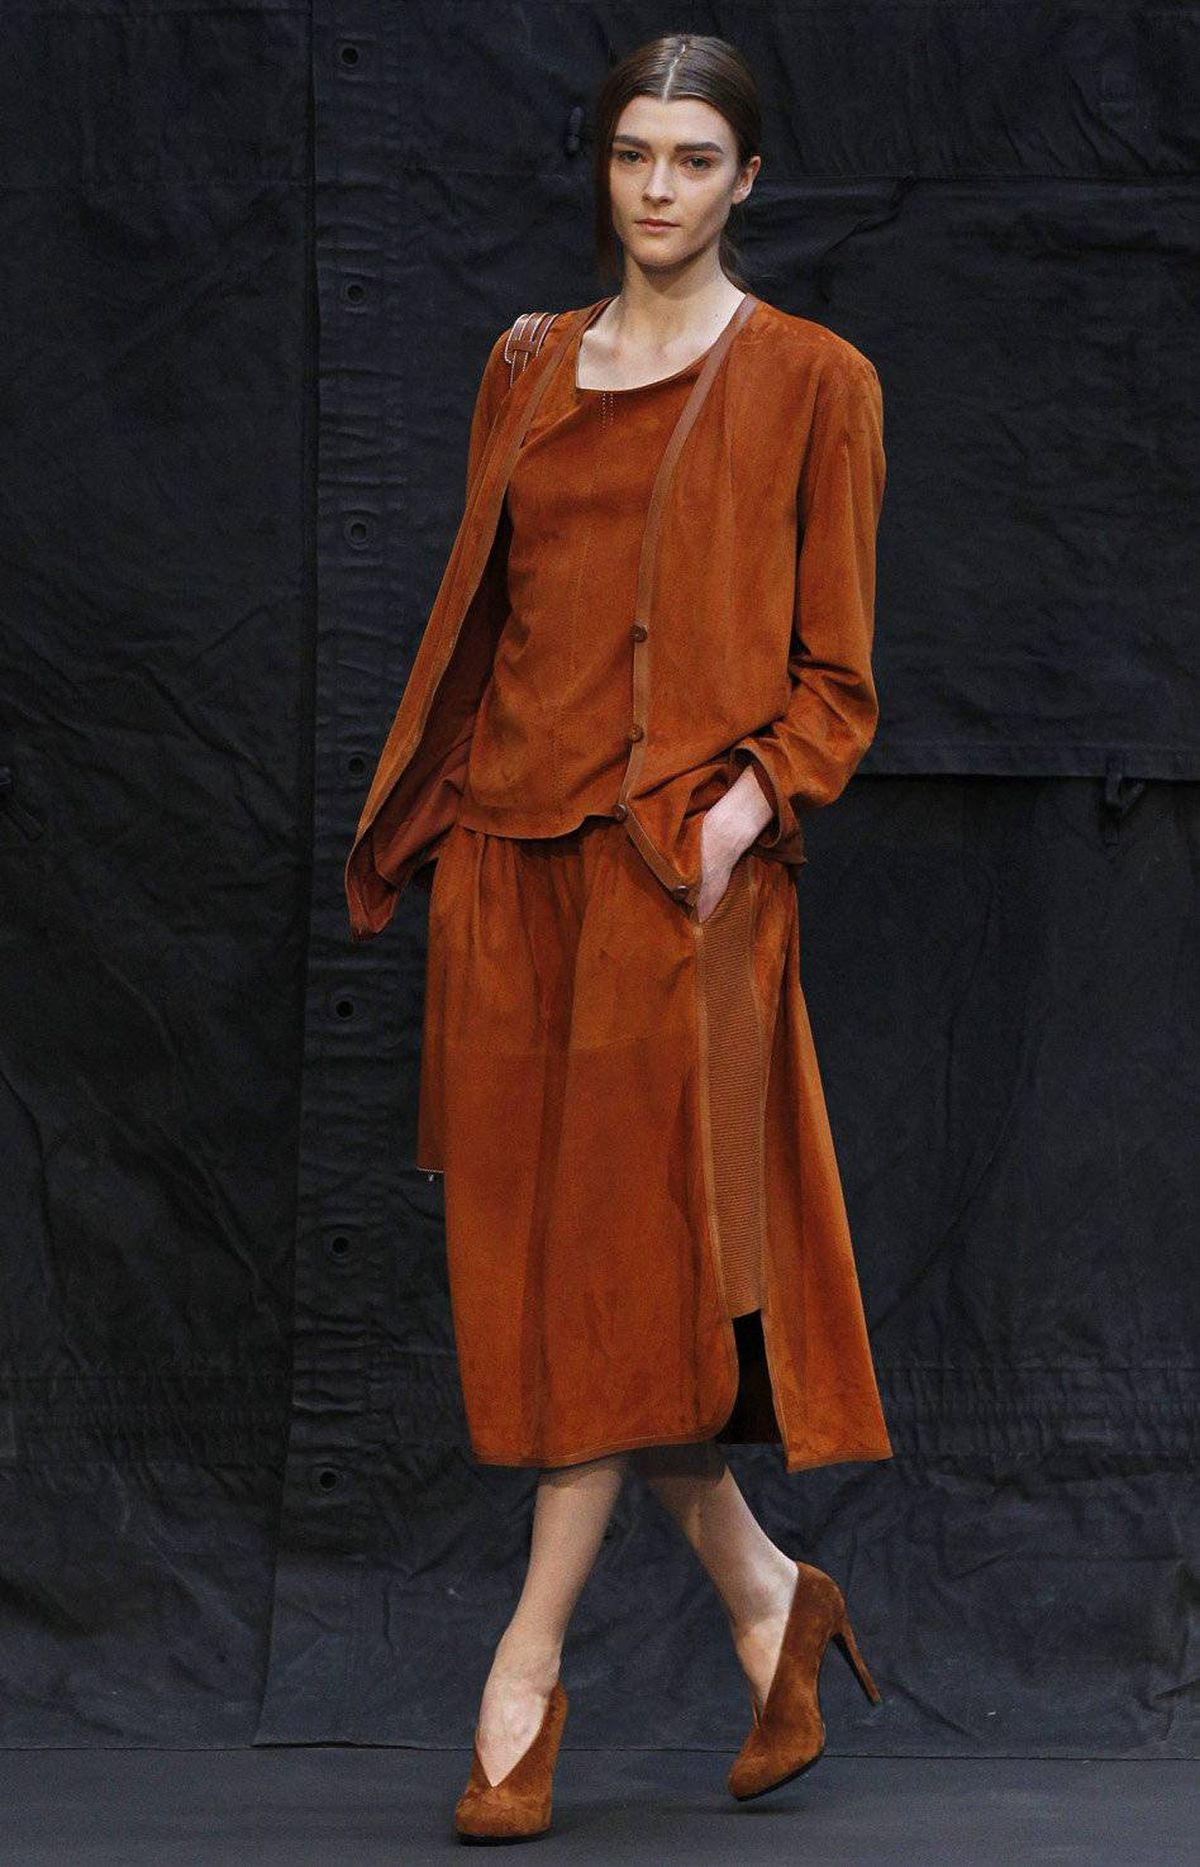 In addition to suede sweatpants with rolled ribbed cuffs, Lemaire (who previously designed for Lacoste) expressed his sportier side with stretch panels, seen running up the side of this marigold suede dress.